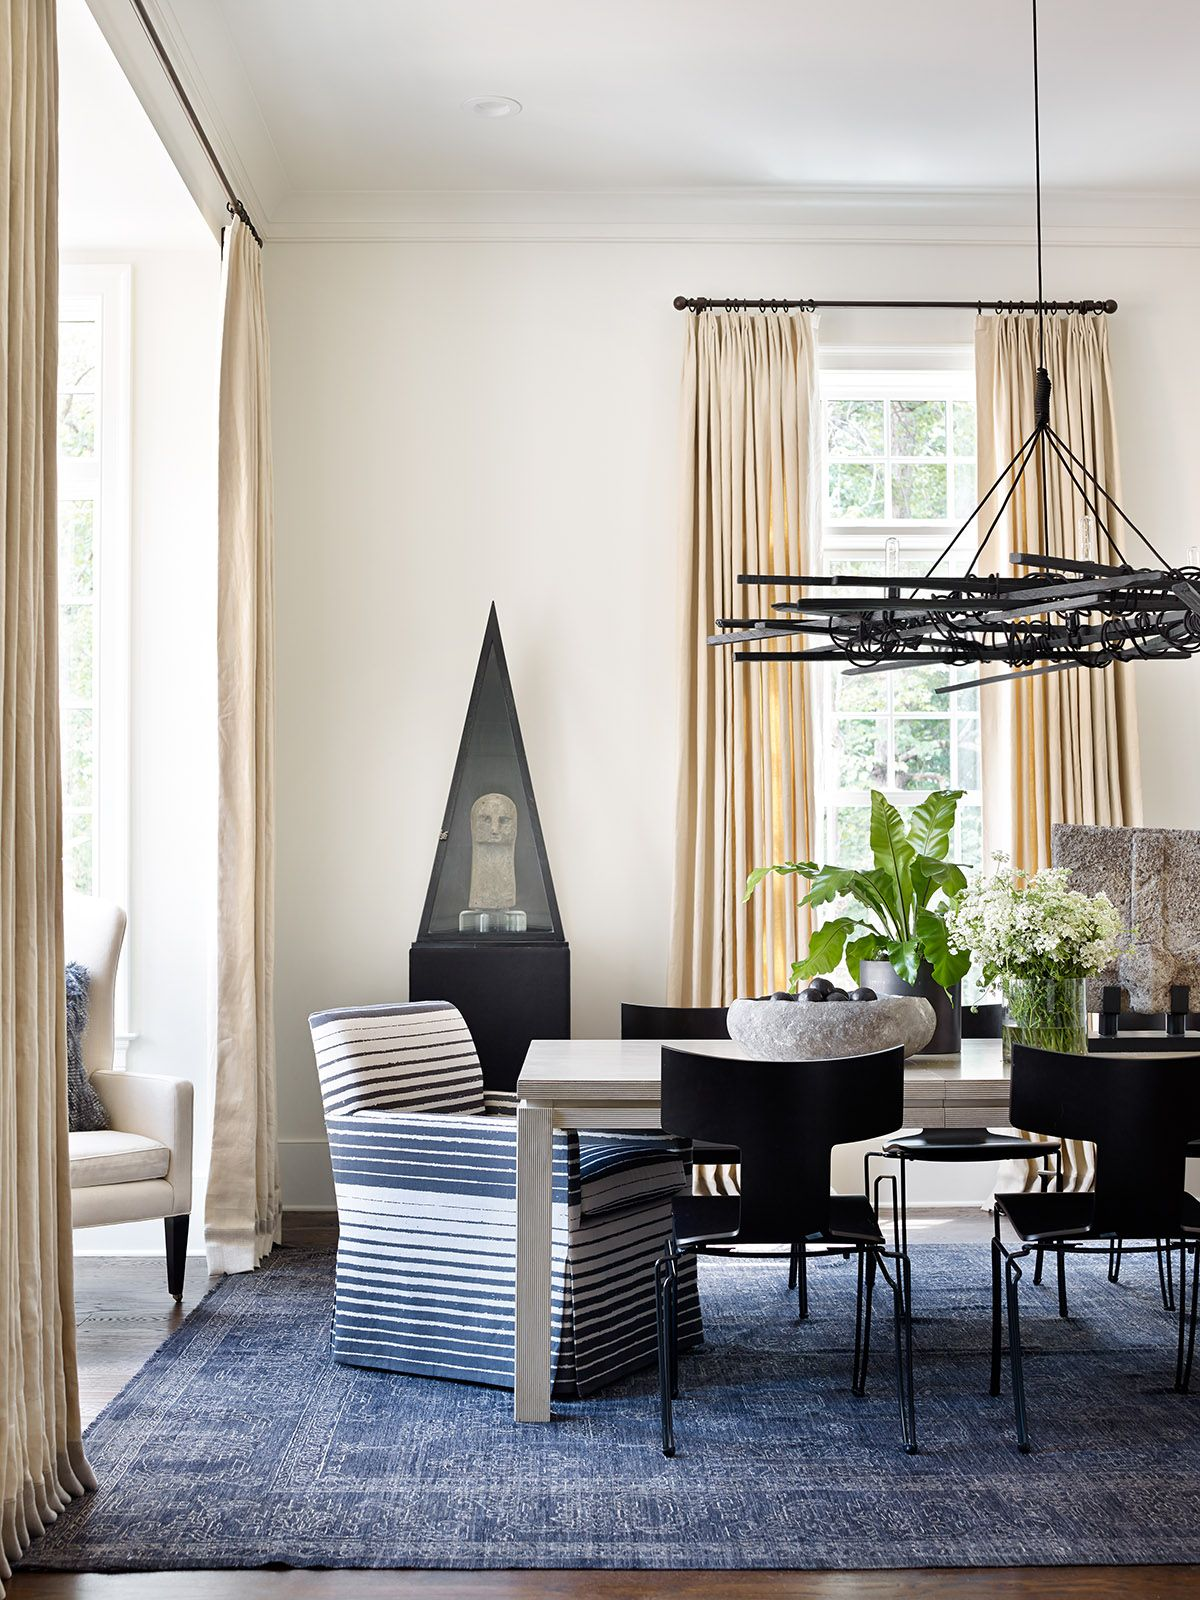 Light Filled Dining Room By Lanah Jackson Robert Brown Interior